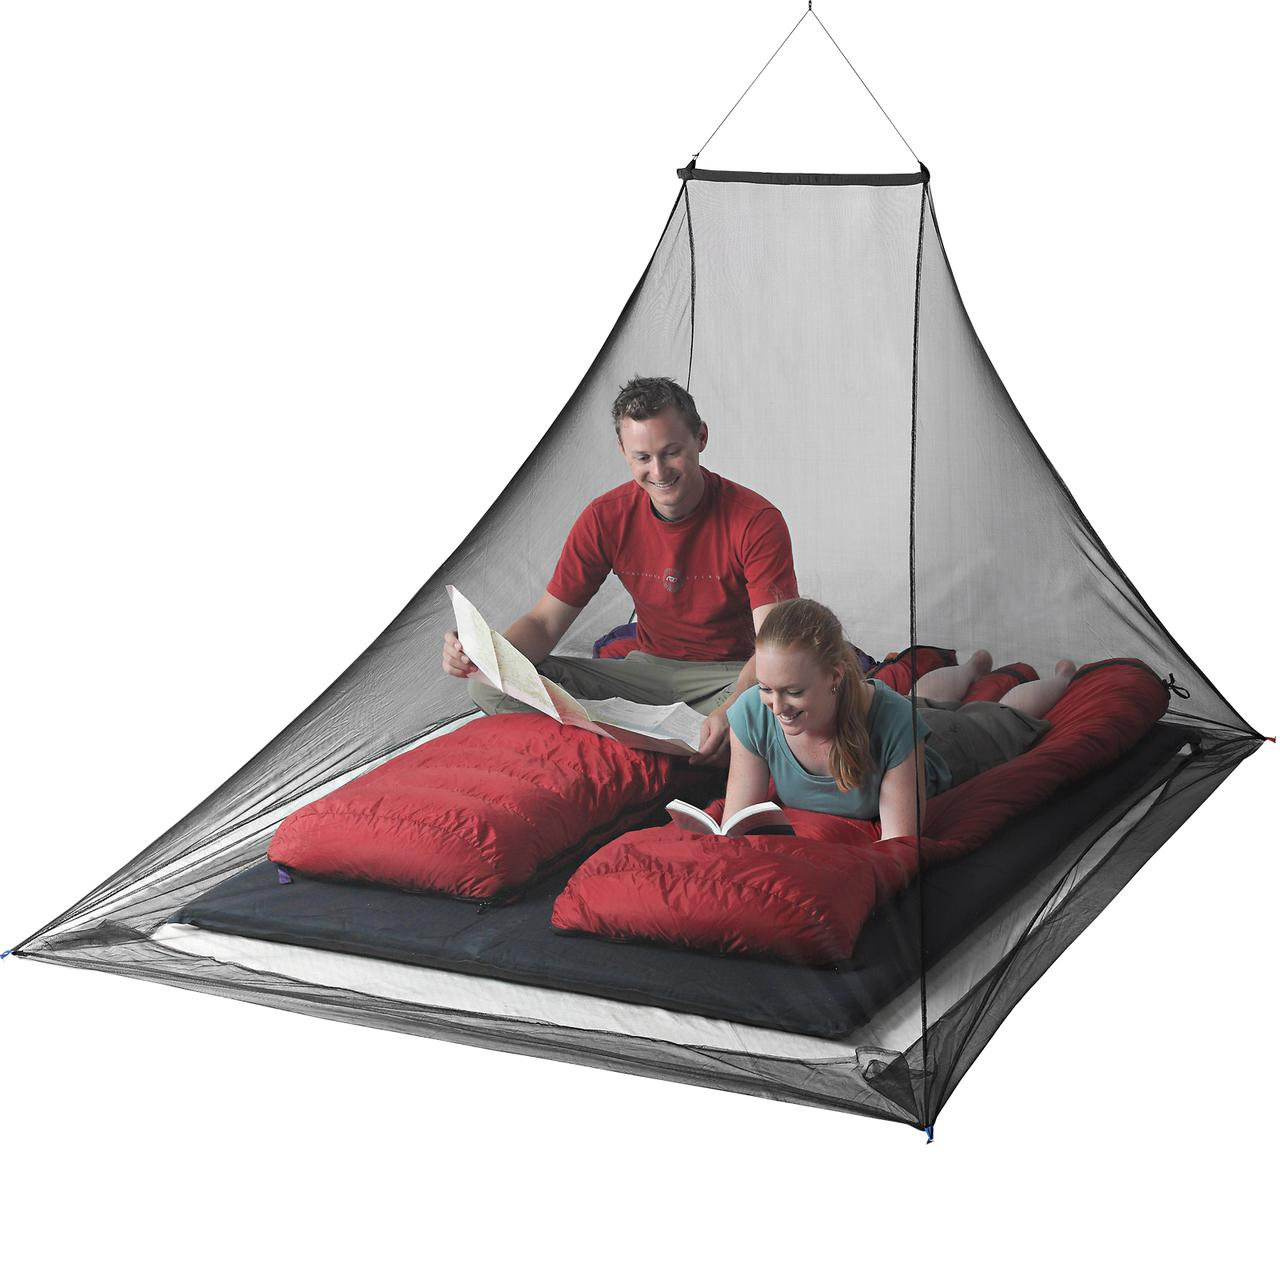 Mosquito Pyramid Net Double Shelter - Insect Shield